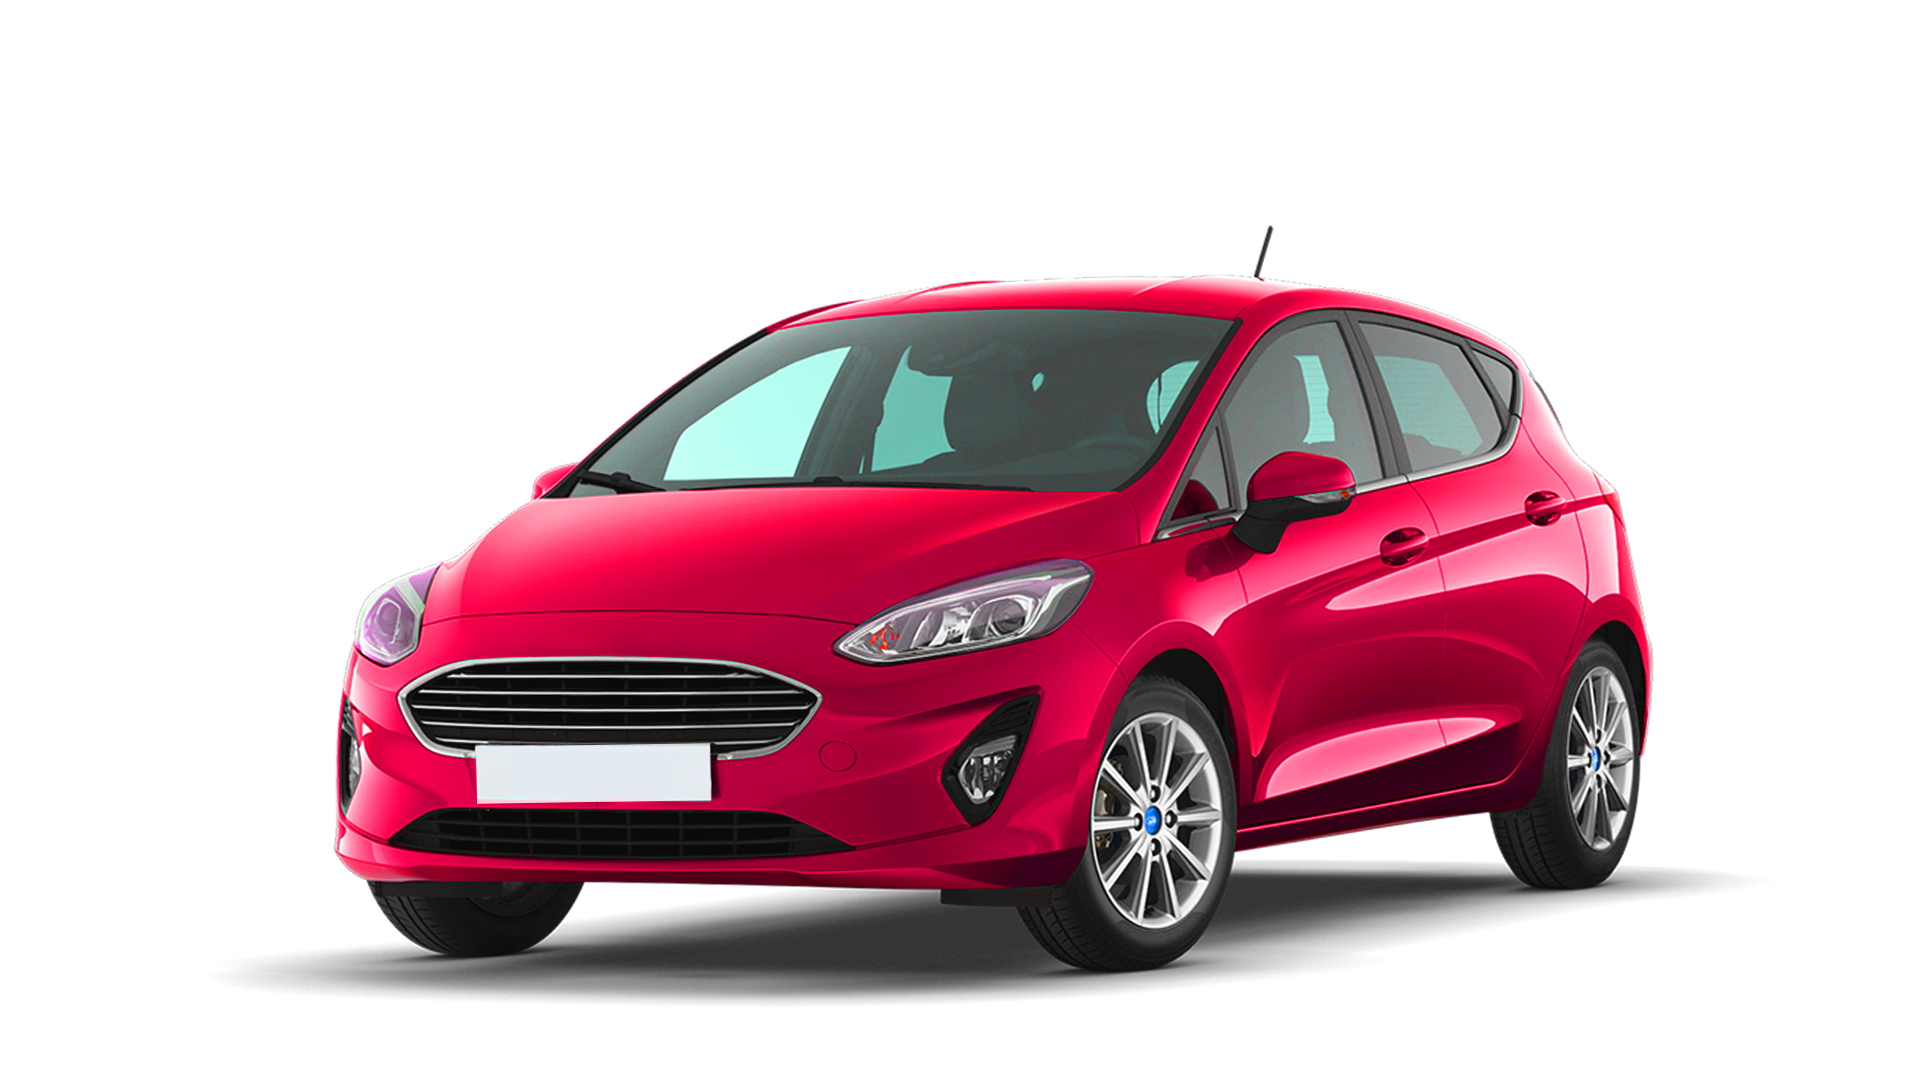 Ford Fiesta red